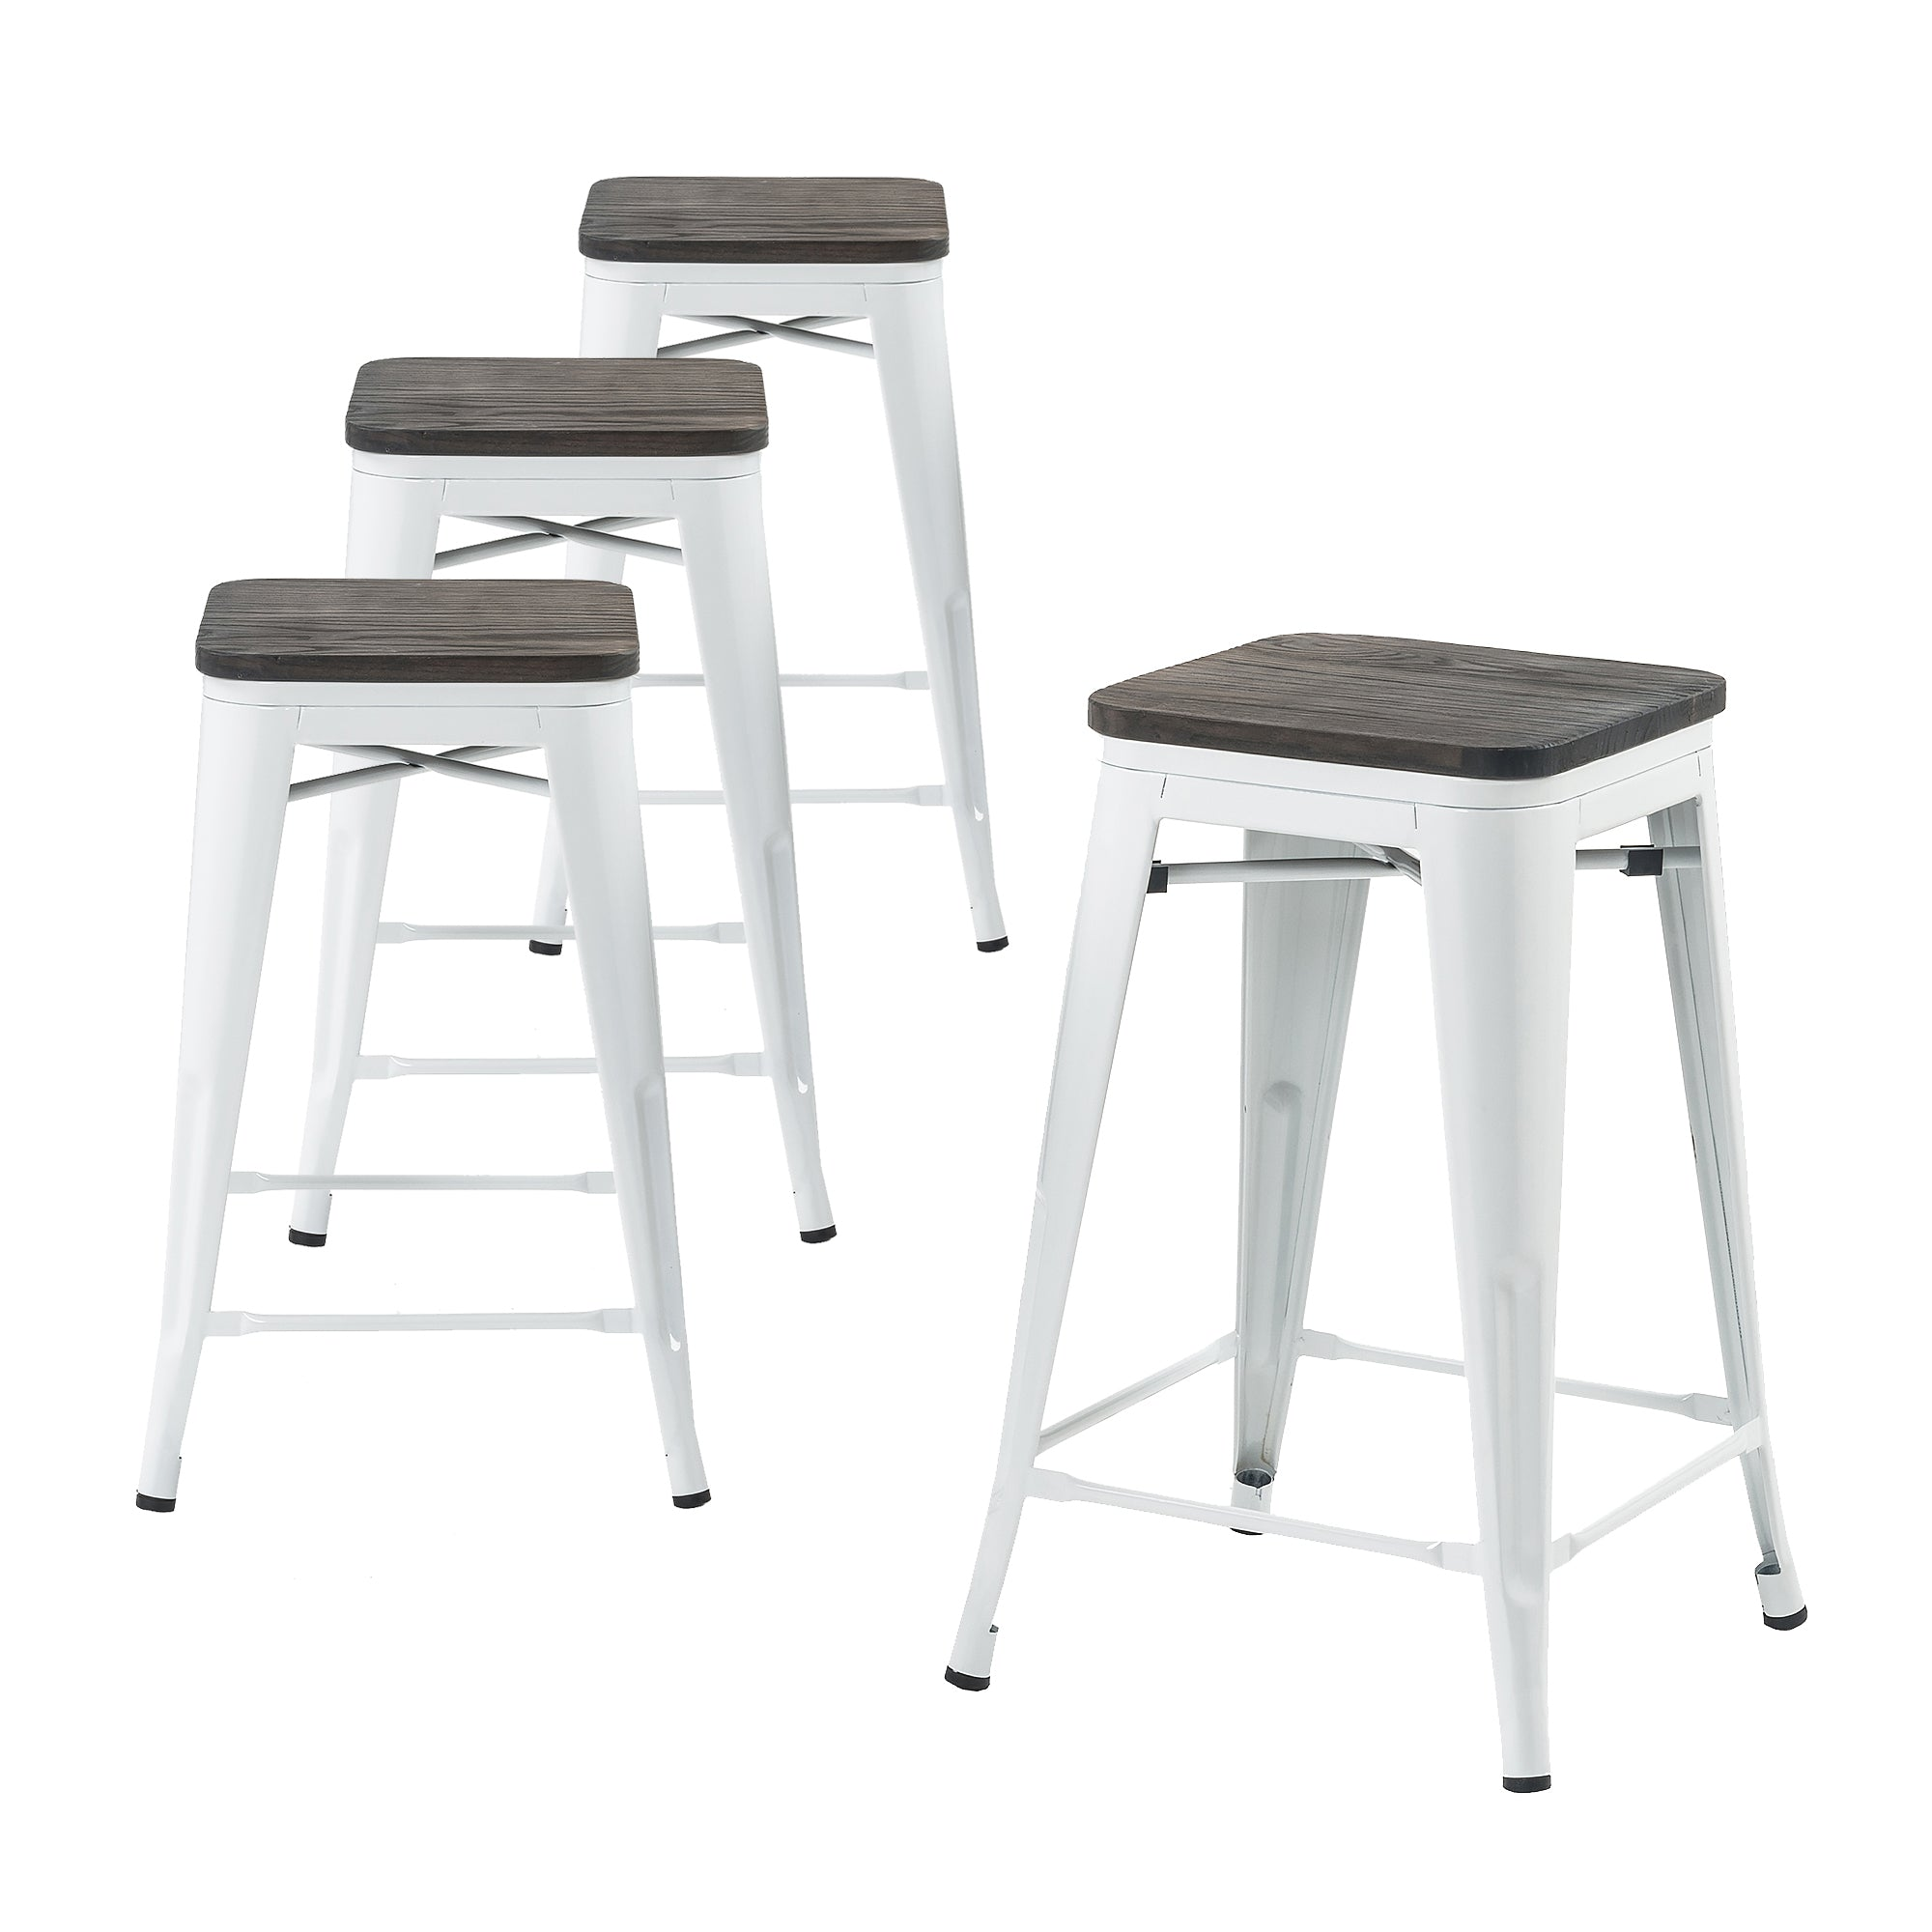 Fine Buschman Store Metal Bar Stools 24 Counter Height Indoor Outdoor And Stackable Set Of 4 White With Wooden Seat Gmtry Best Dining Table And Chair Ideas Images Gmtryco